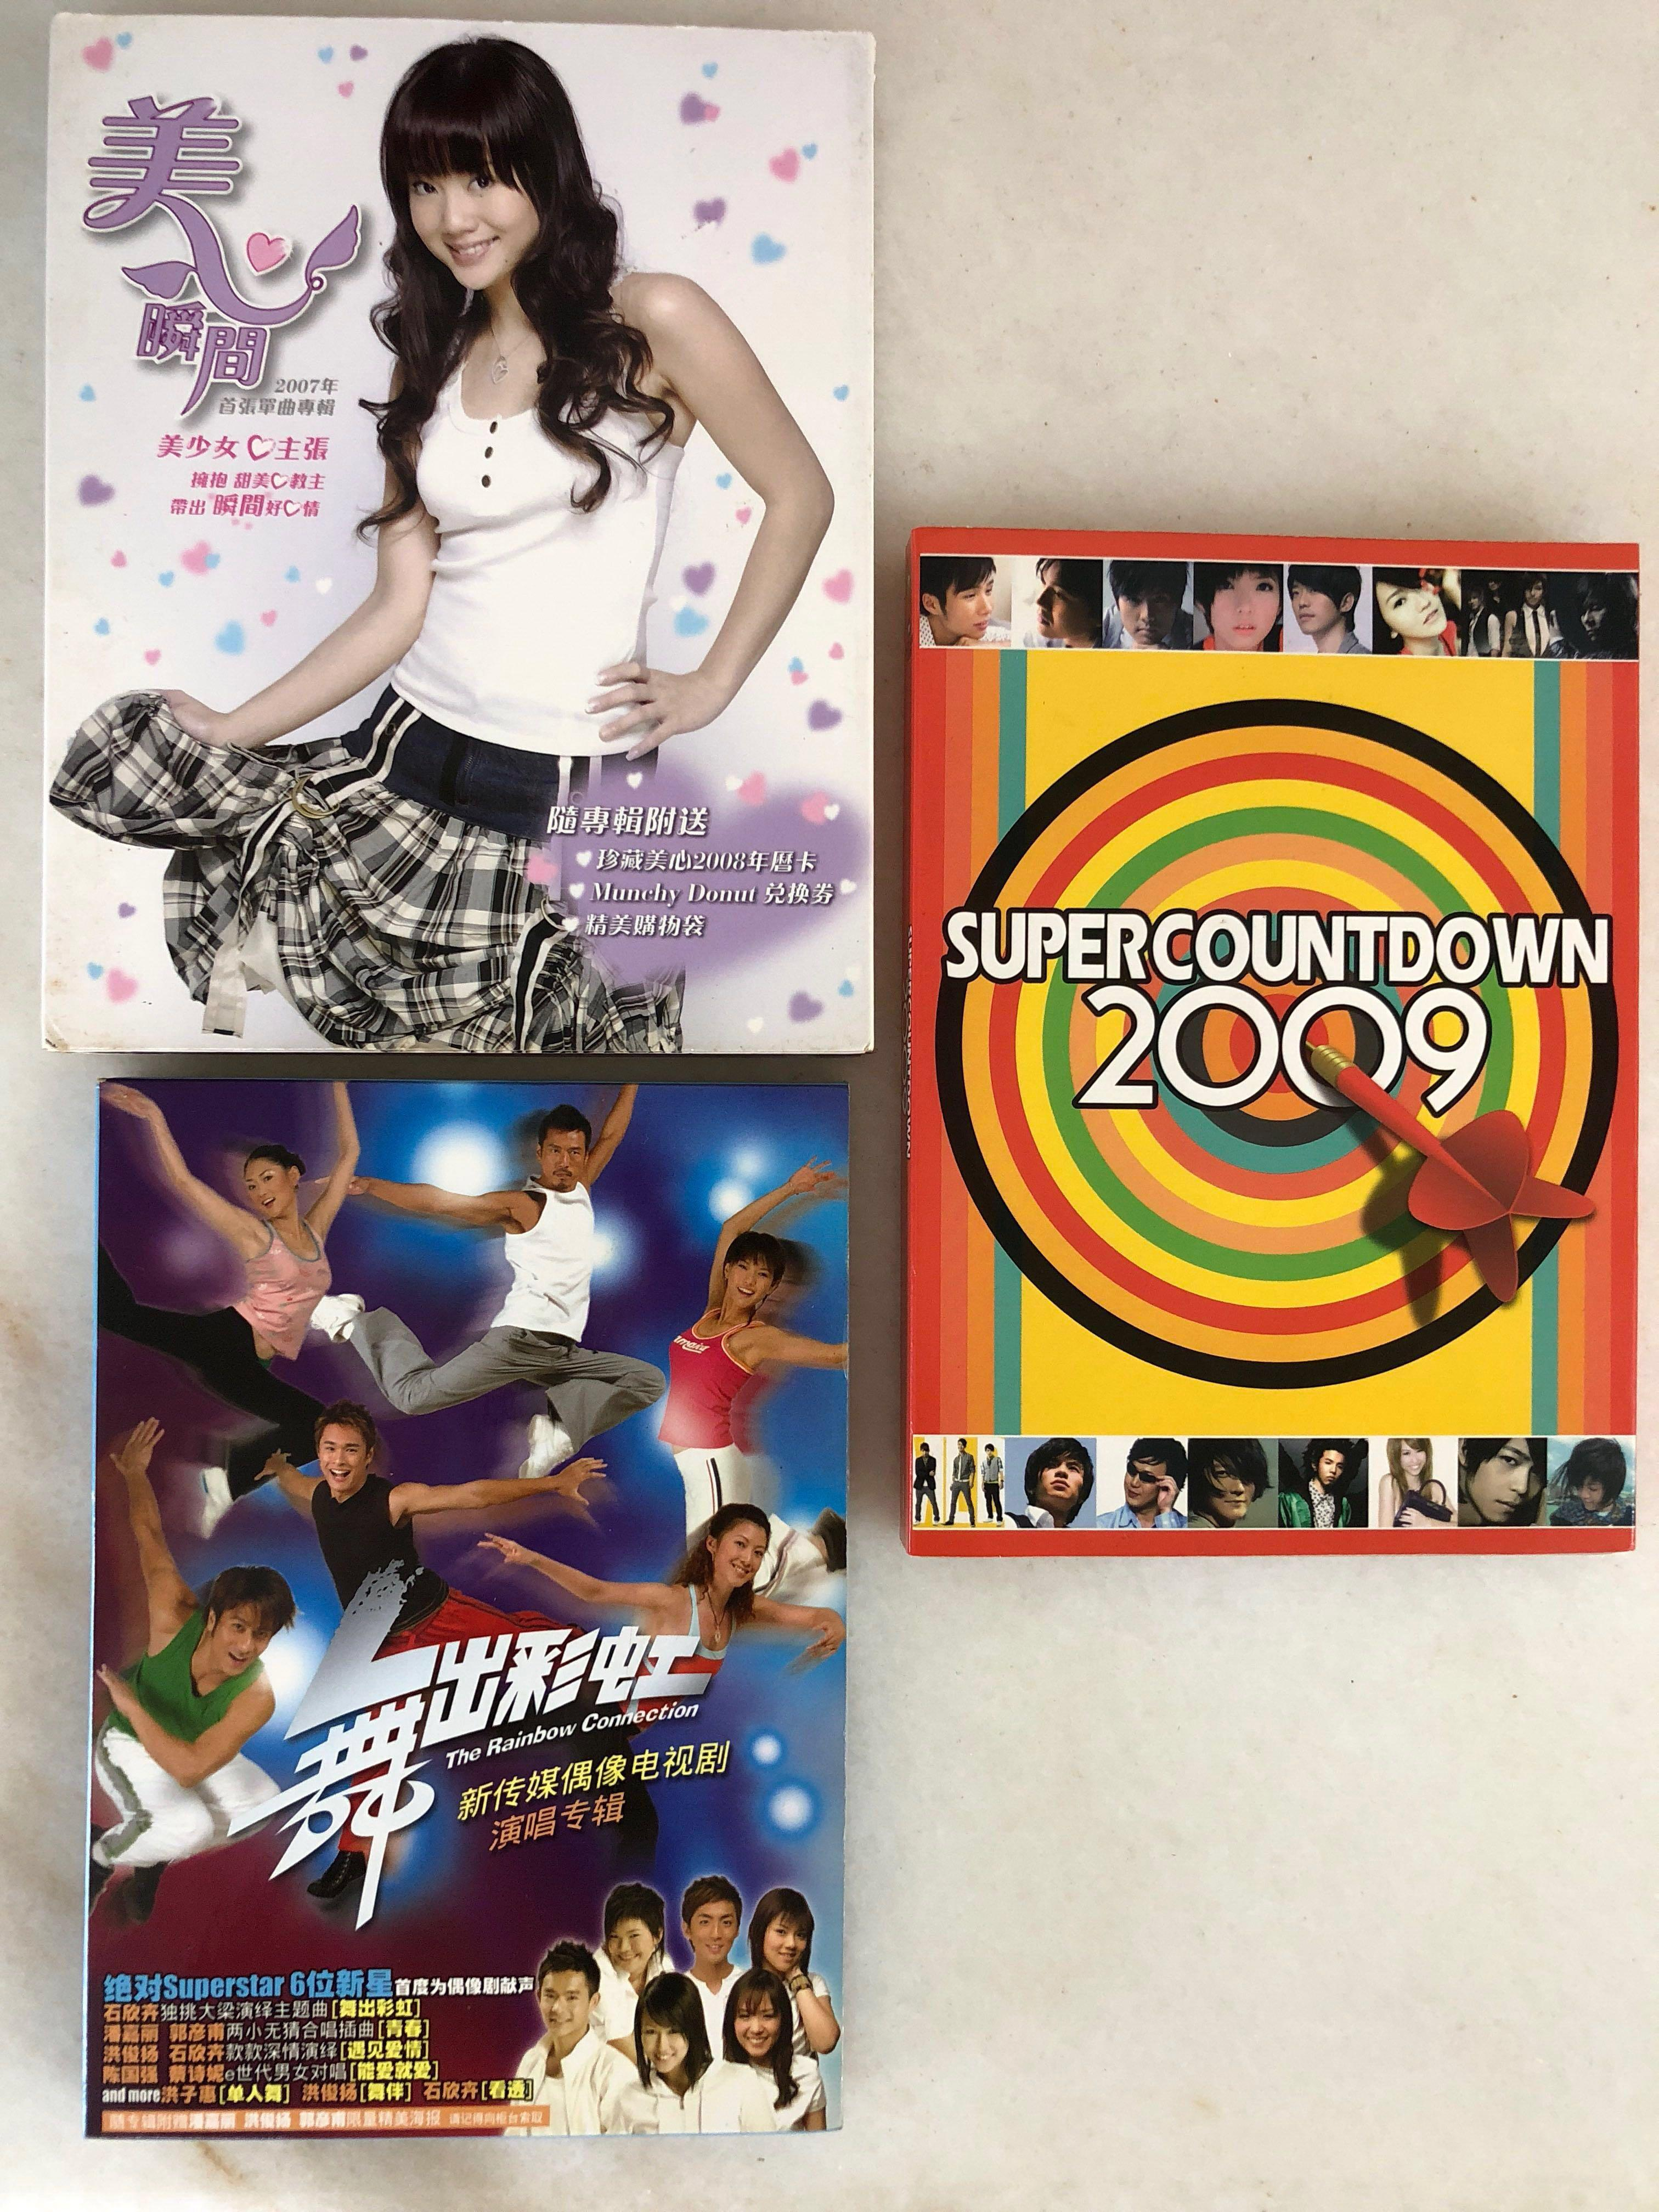 Chinese CD Albums, Music & Media, CDs, DVDs & Other Media on